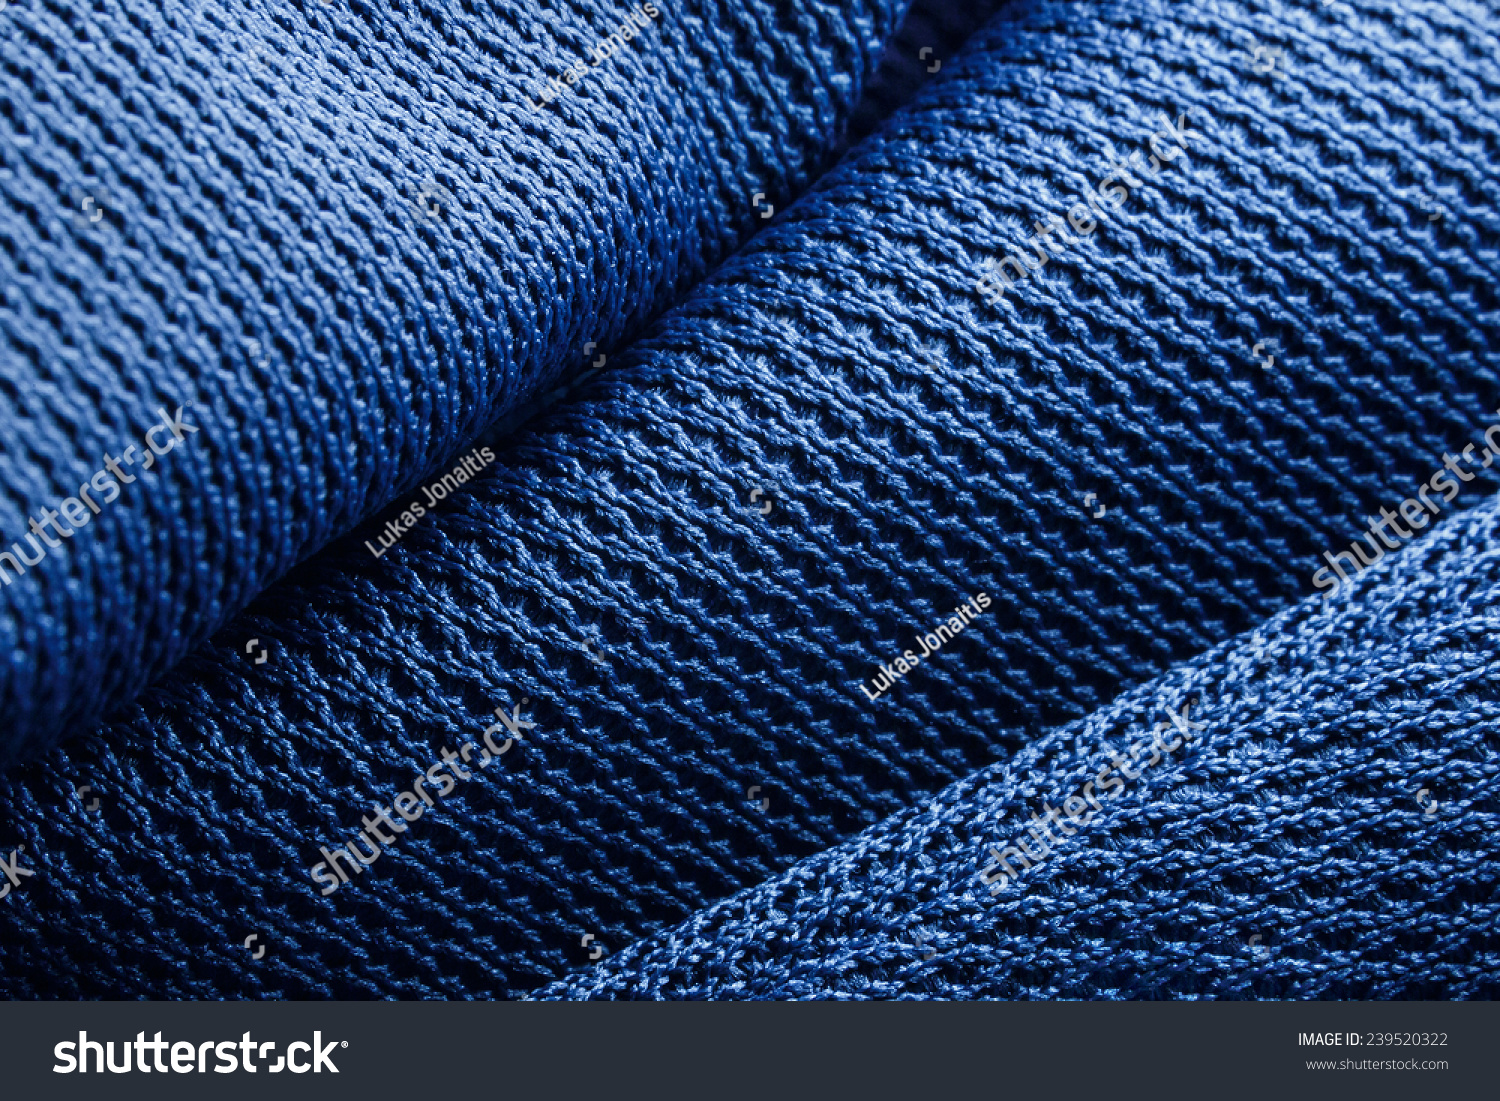 Form And Texture : Forms blue fabric texture stock photo shutterstock